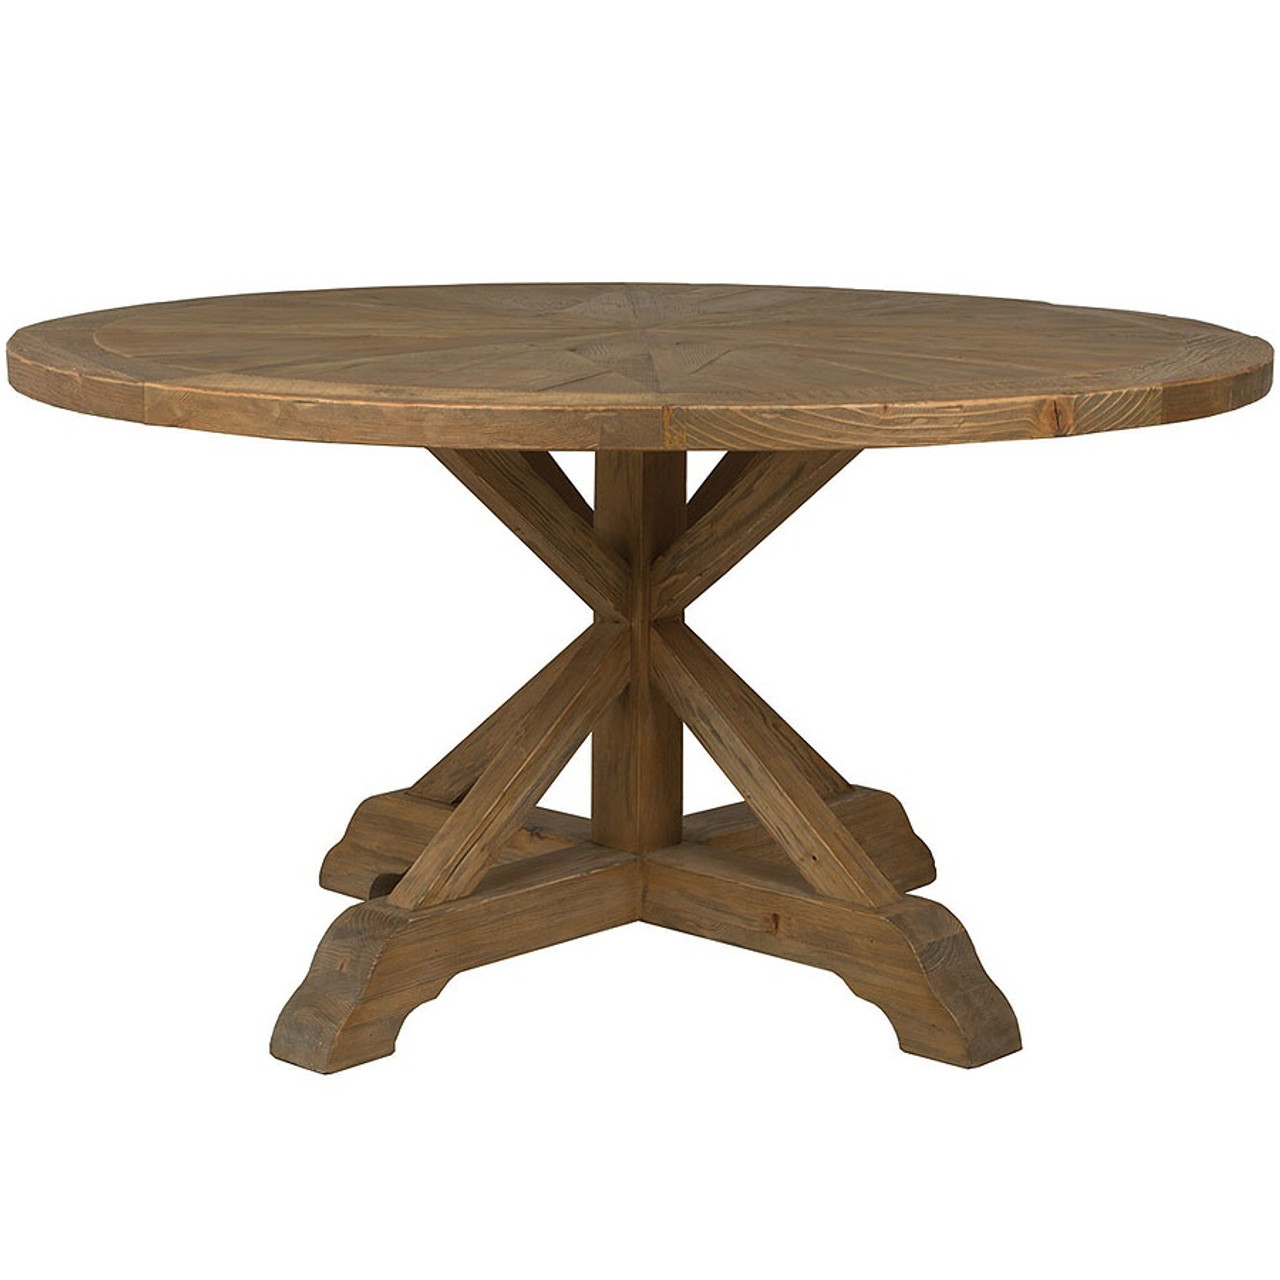 Wood Round Dining Table: Opio Reclaimed Wood Round Dining Table 60""